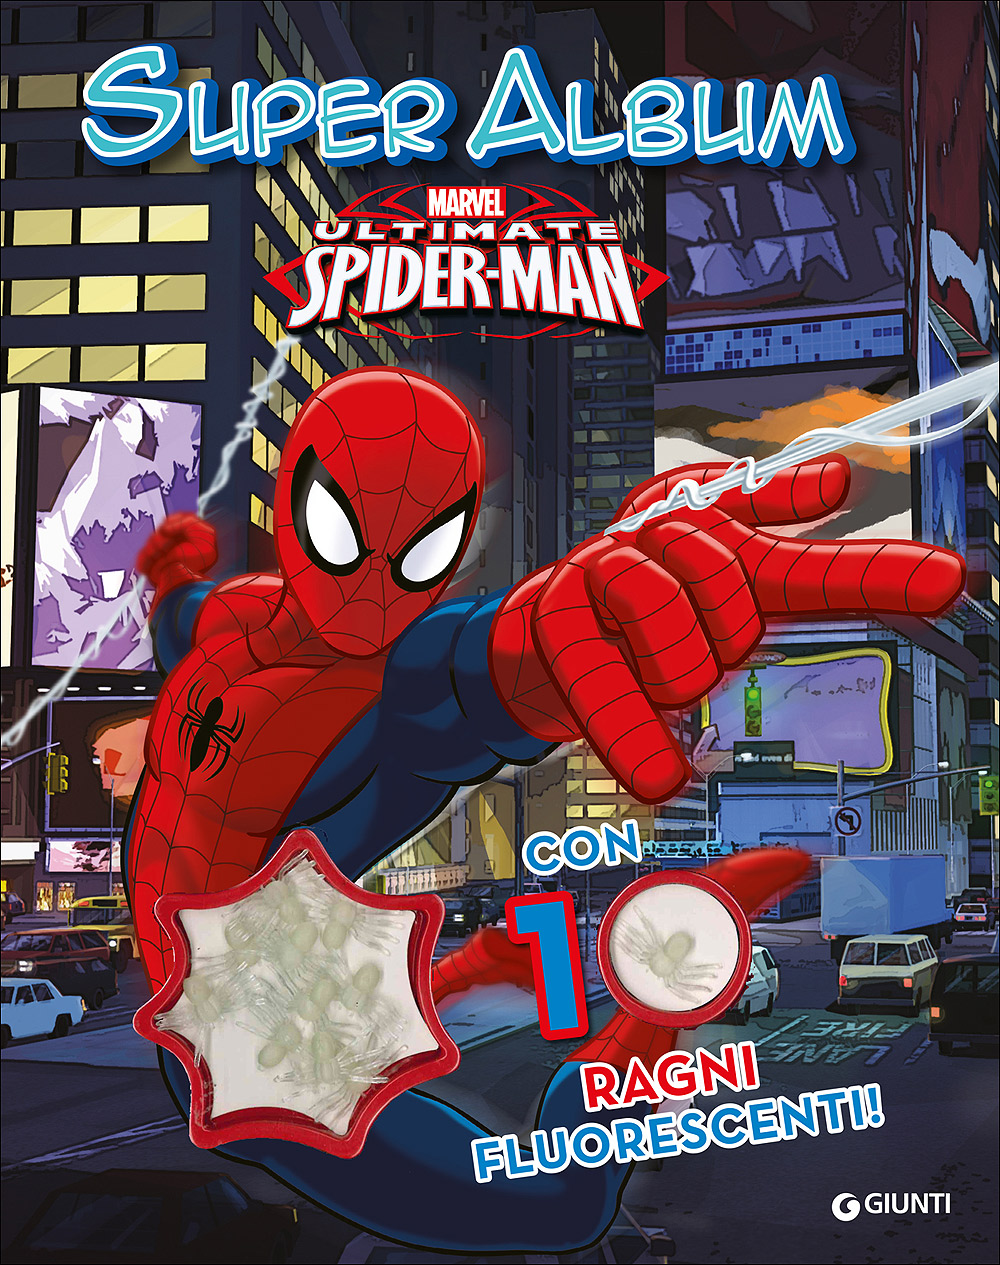 Super Album - Ultimate Spider-Man